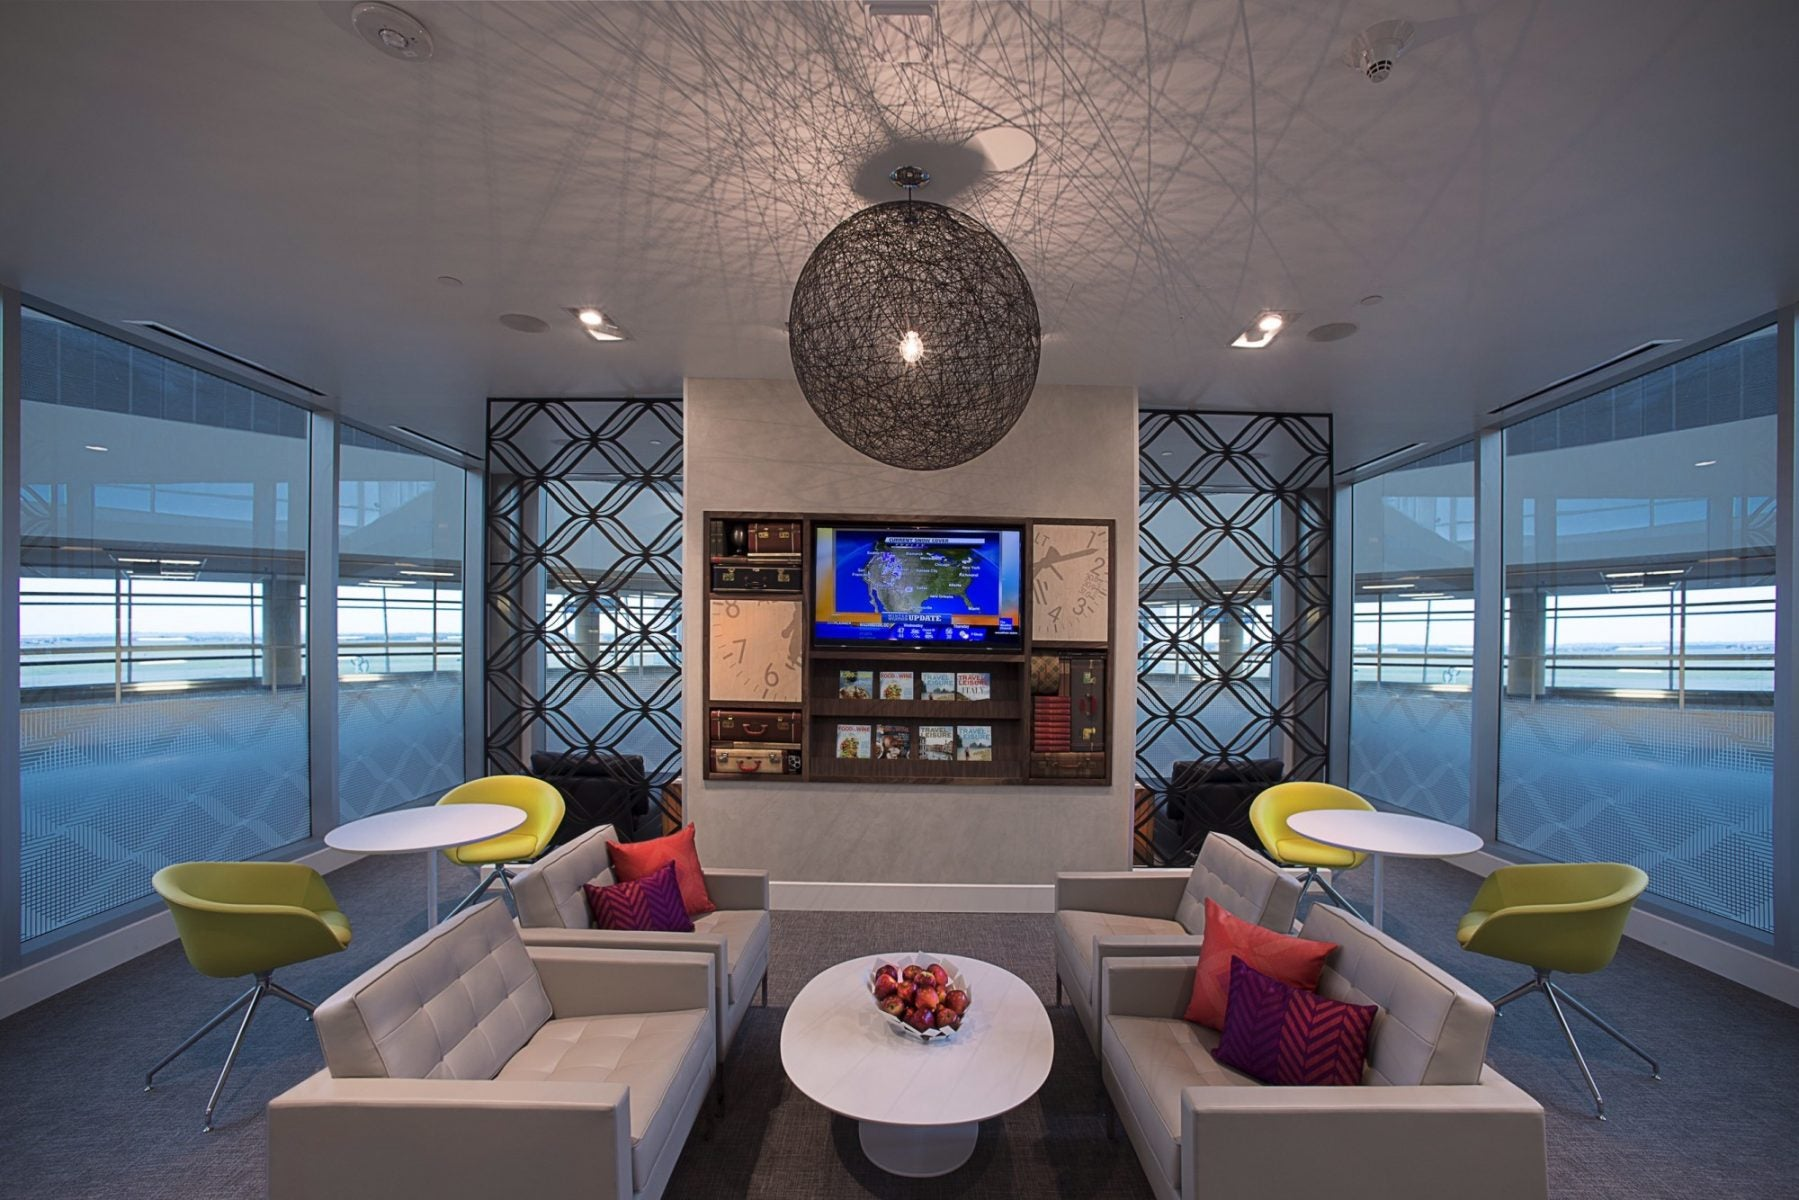 The Centurion Lounge at Dallas Fort-Worth Offers Modern, Comfortable Styling with Showers, Wi-Fi, and Refreshments